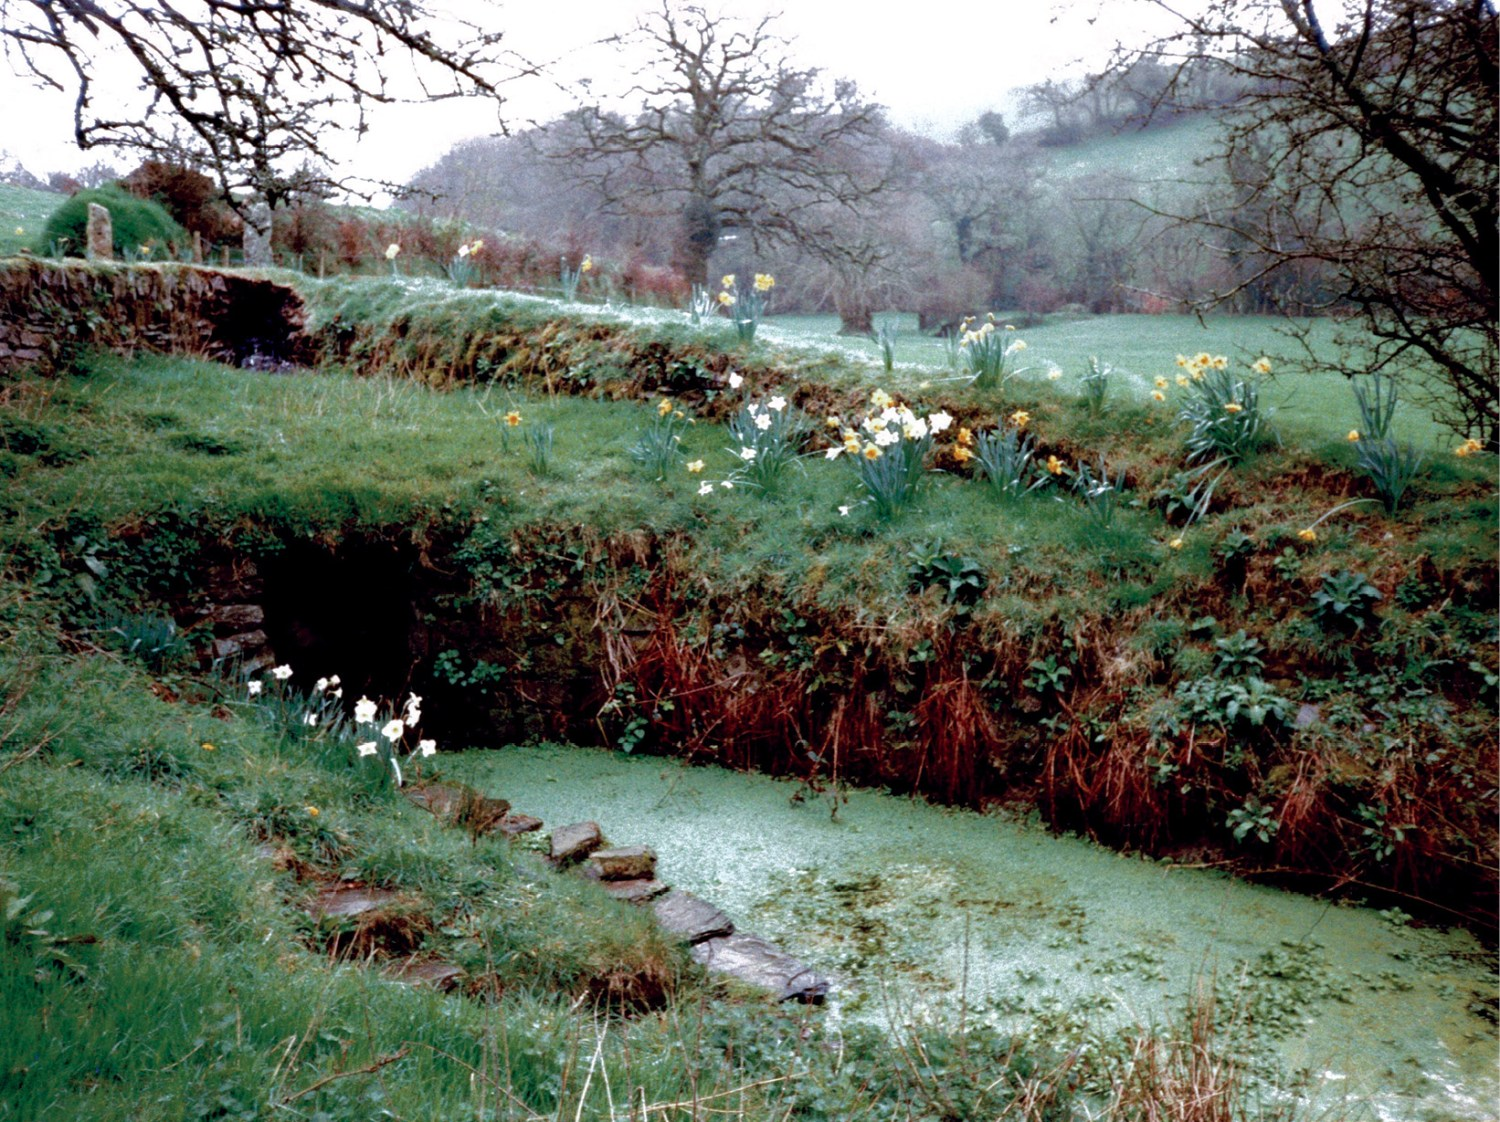 BELOW The Cornish antiquary Richard Carew (1555-1620) noted that St Non's Well, north of Altarnun, Cornwall, was used for 'bowsenning' immersing sick people (especially those regarded as insane) in the hope of a cure. The relics of St Non were distributed widely, her role in giving birth to St David (c.AD 500), patron saint of Wales, being seen as like that of the Virgin, although the virginal St Non conceived David as a result of sexual assault.